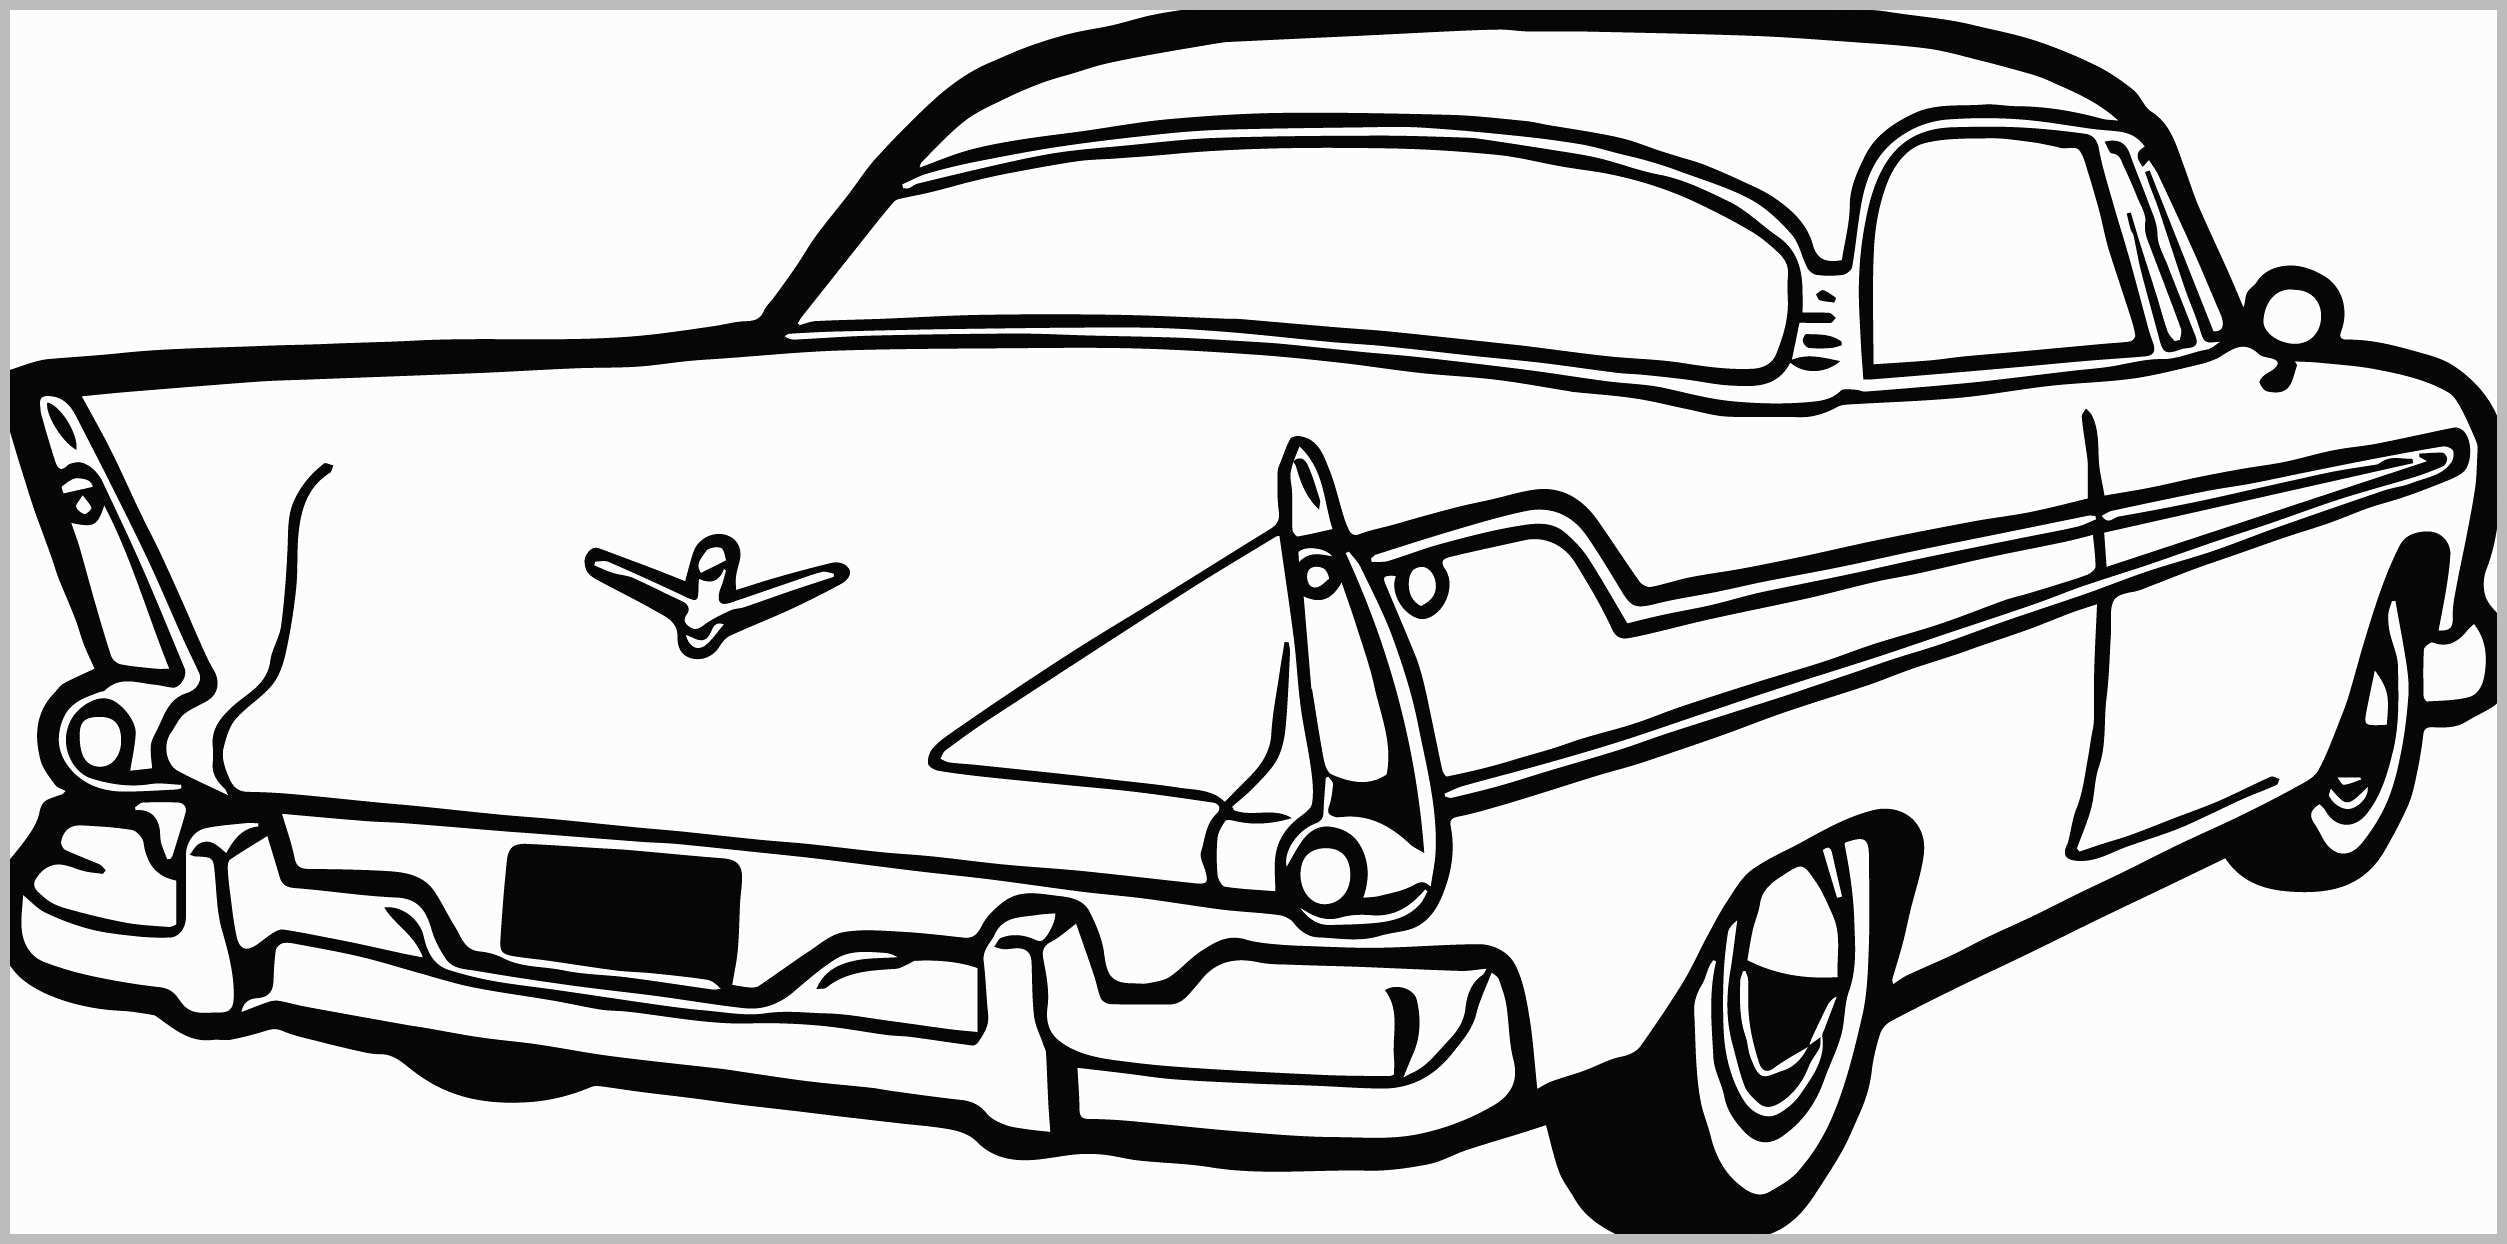 printable pictures of cars to color disney pixar39s cars coloring pages disneyclipscom printable pictures of to cars color